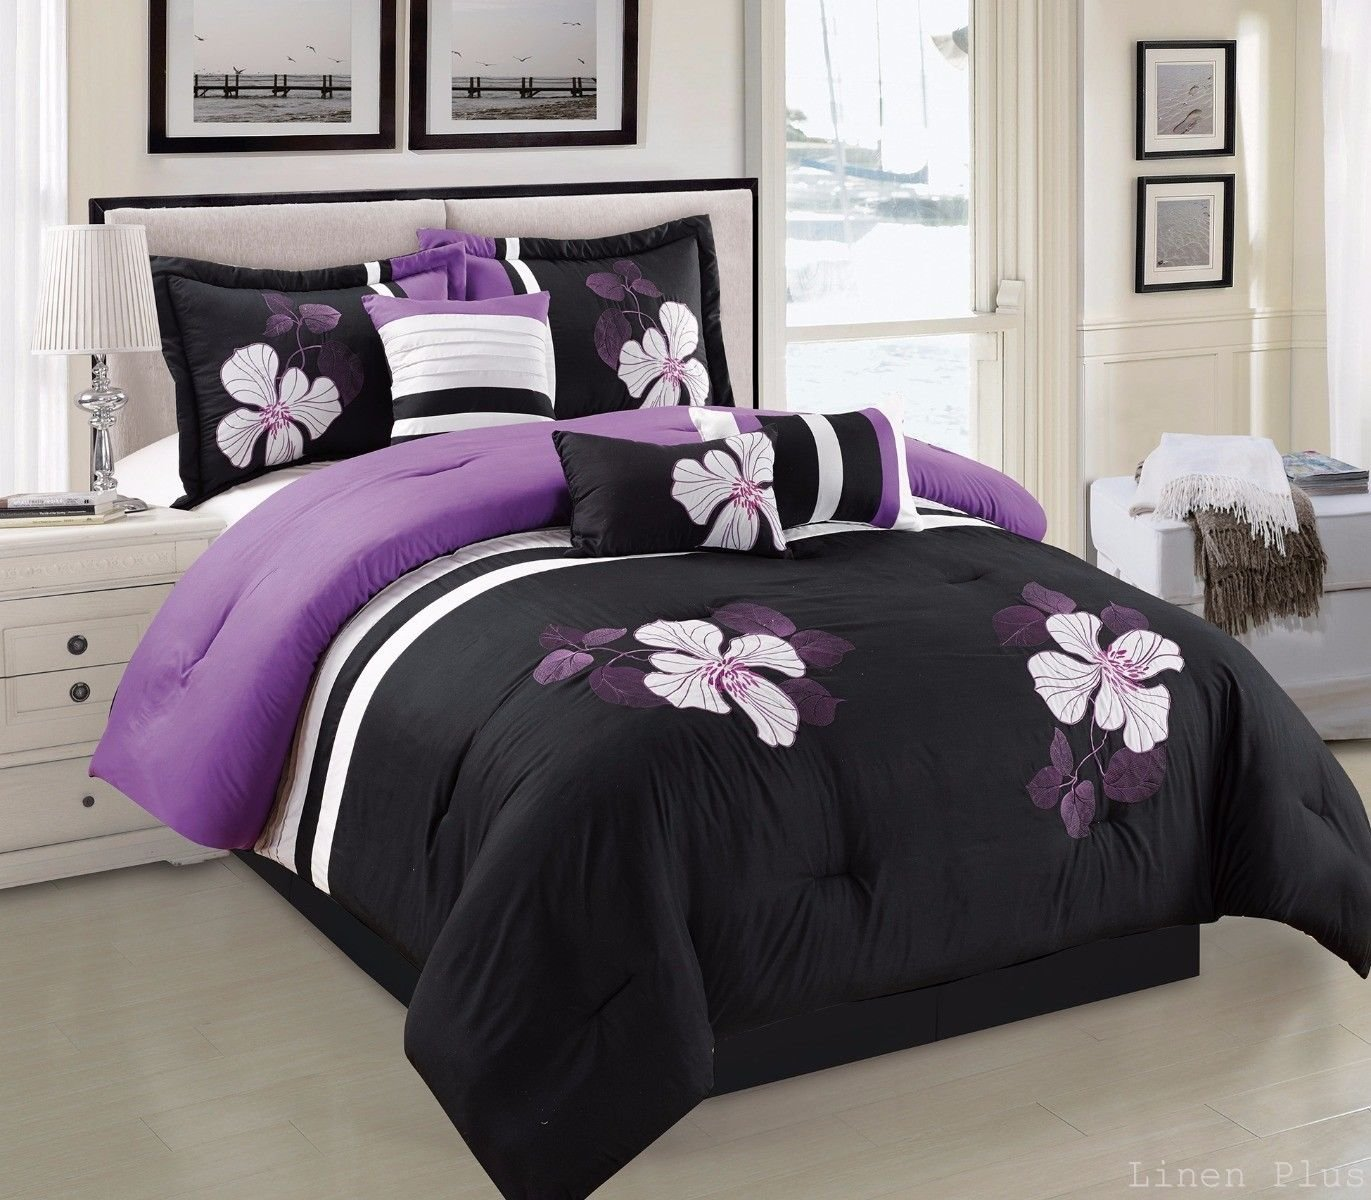 purple and black bedding sets ease bedding with style. Black Bedroom Furniture Sets. Home Design Ideas